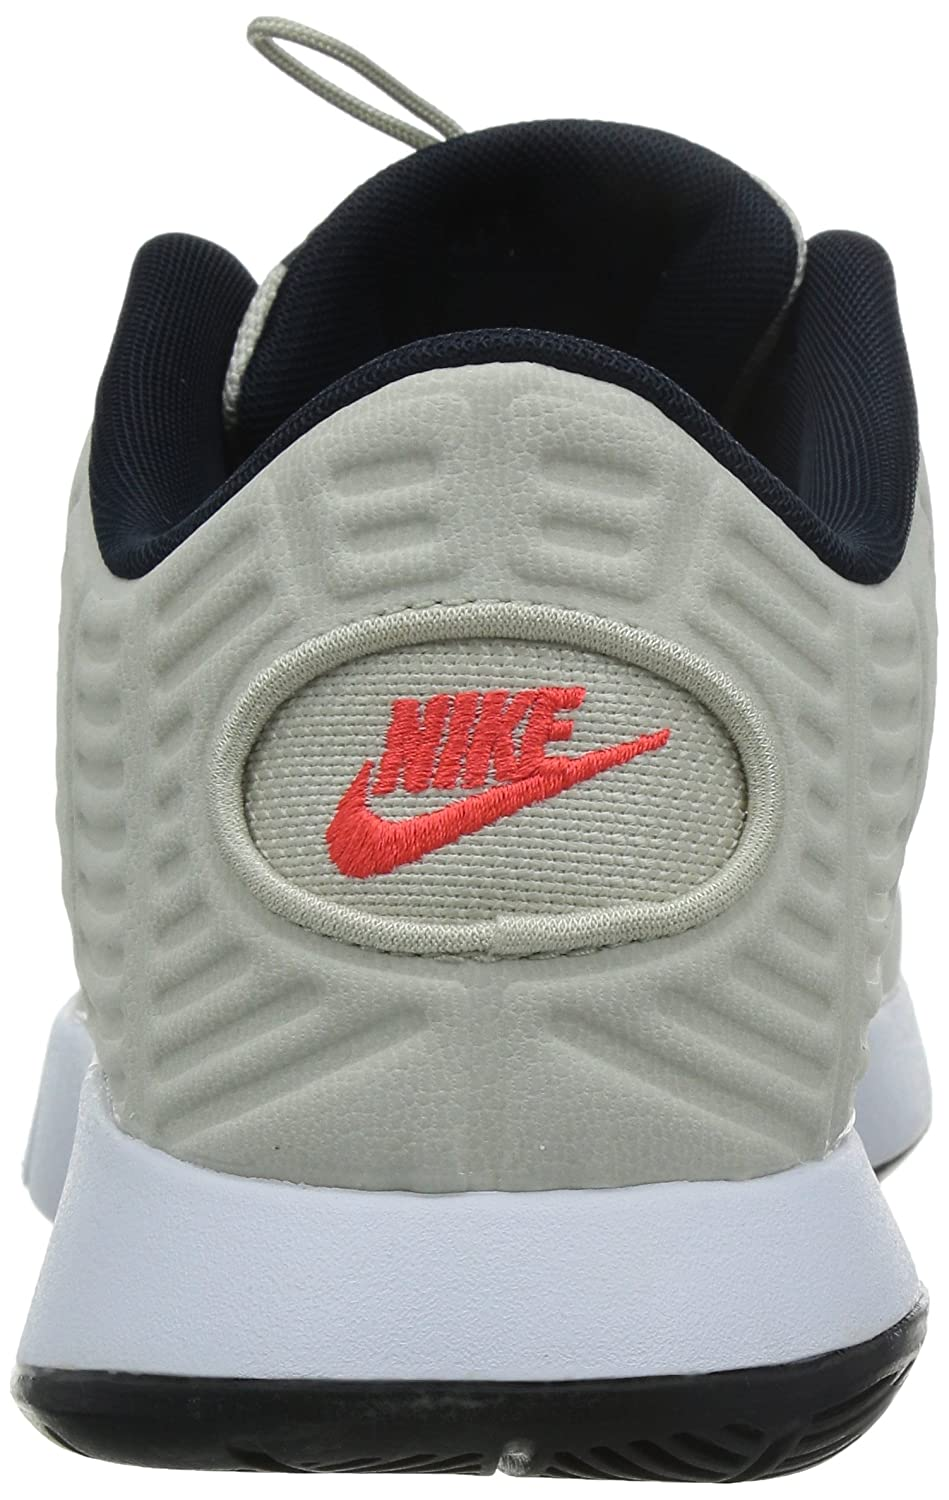 Nike Lunar Hyperrev Low Ext Mens Basketball Shoes LGHT BN/BRGHT Grey Tan/White